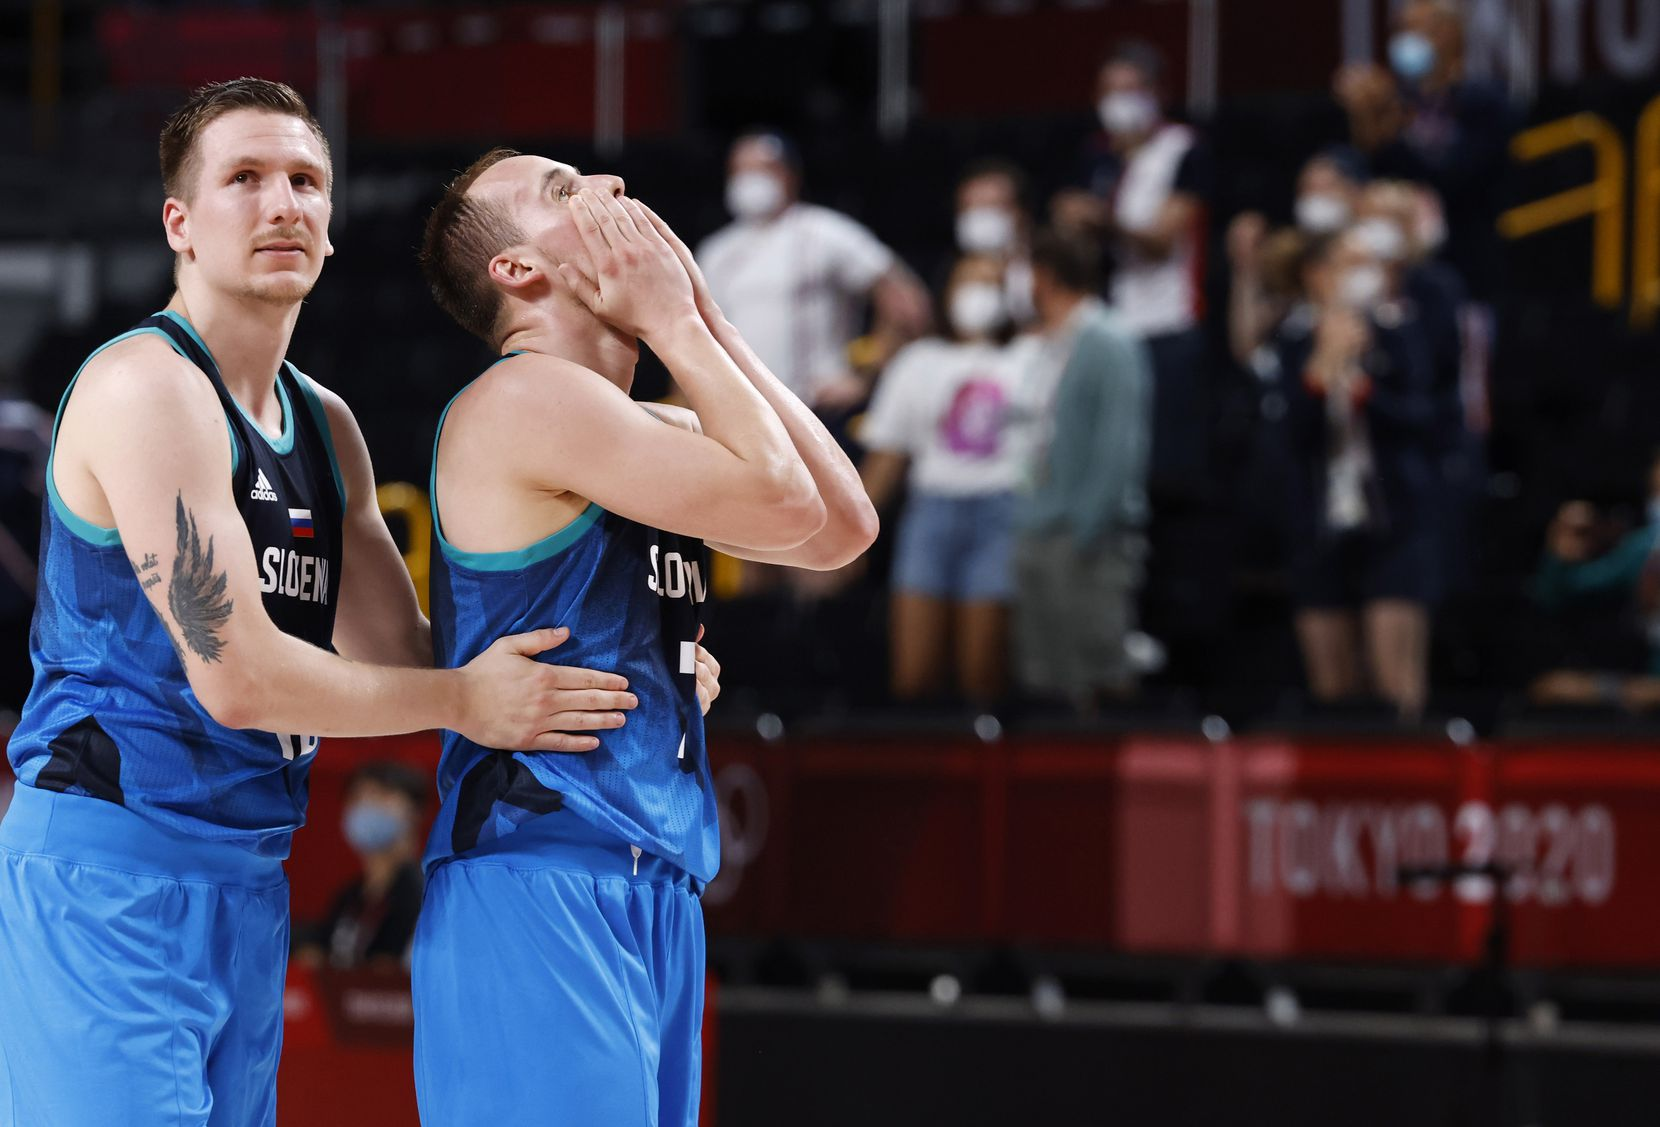 Slovenia's Gregor Hrovat (15) consoles Slovenia's Klemen Prepelic (7) after they lost to France in the final seconds of the second half of a men's basketball semifinal at the postponed 2020 Tokyo Olympics at Saitama Super Arena, on Thursday, August 5, 2021, in Saitama, Japan. France defeated Slovenia 90-89. Slovenia will play in the bronze medal game. (Vernon Bryant/The Dallas Morning News)